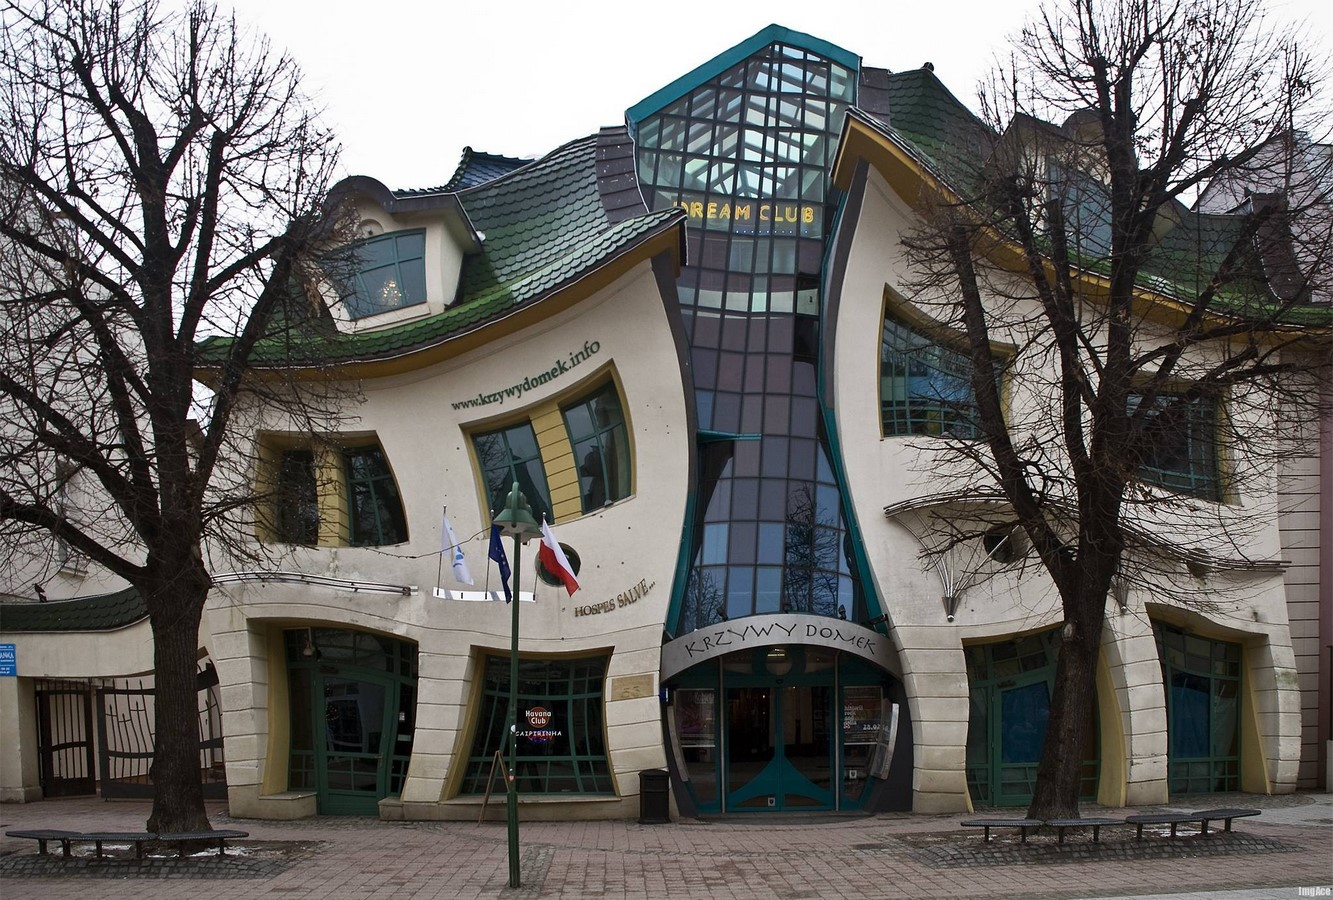 10 unusual facades around the world - Sheet6